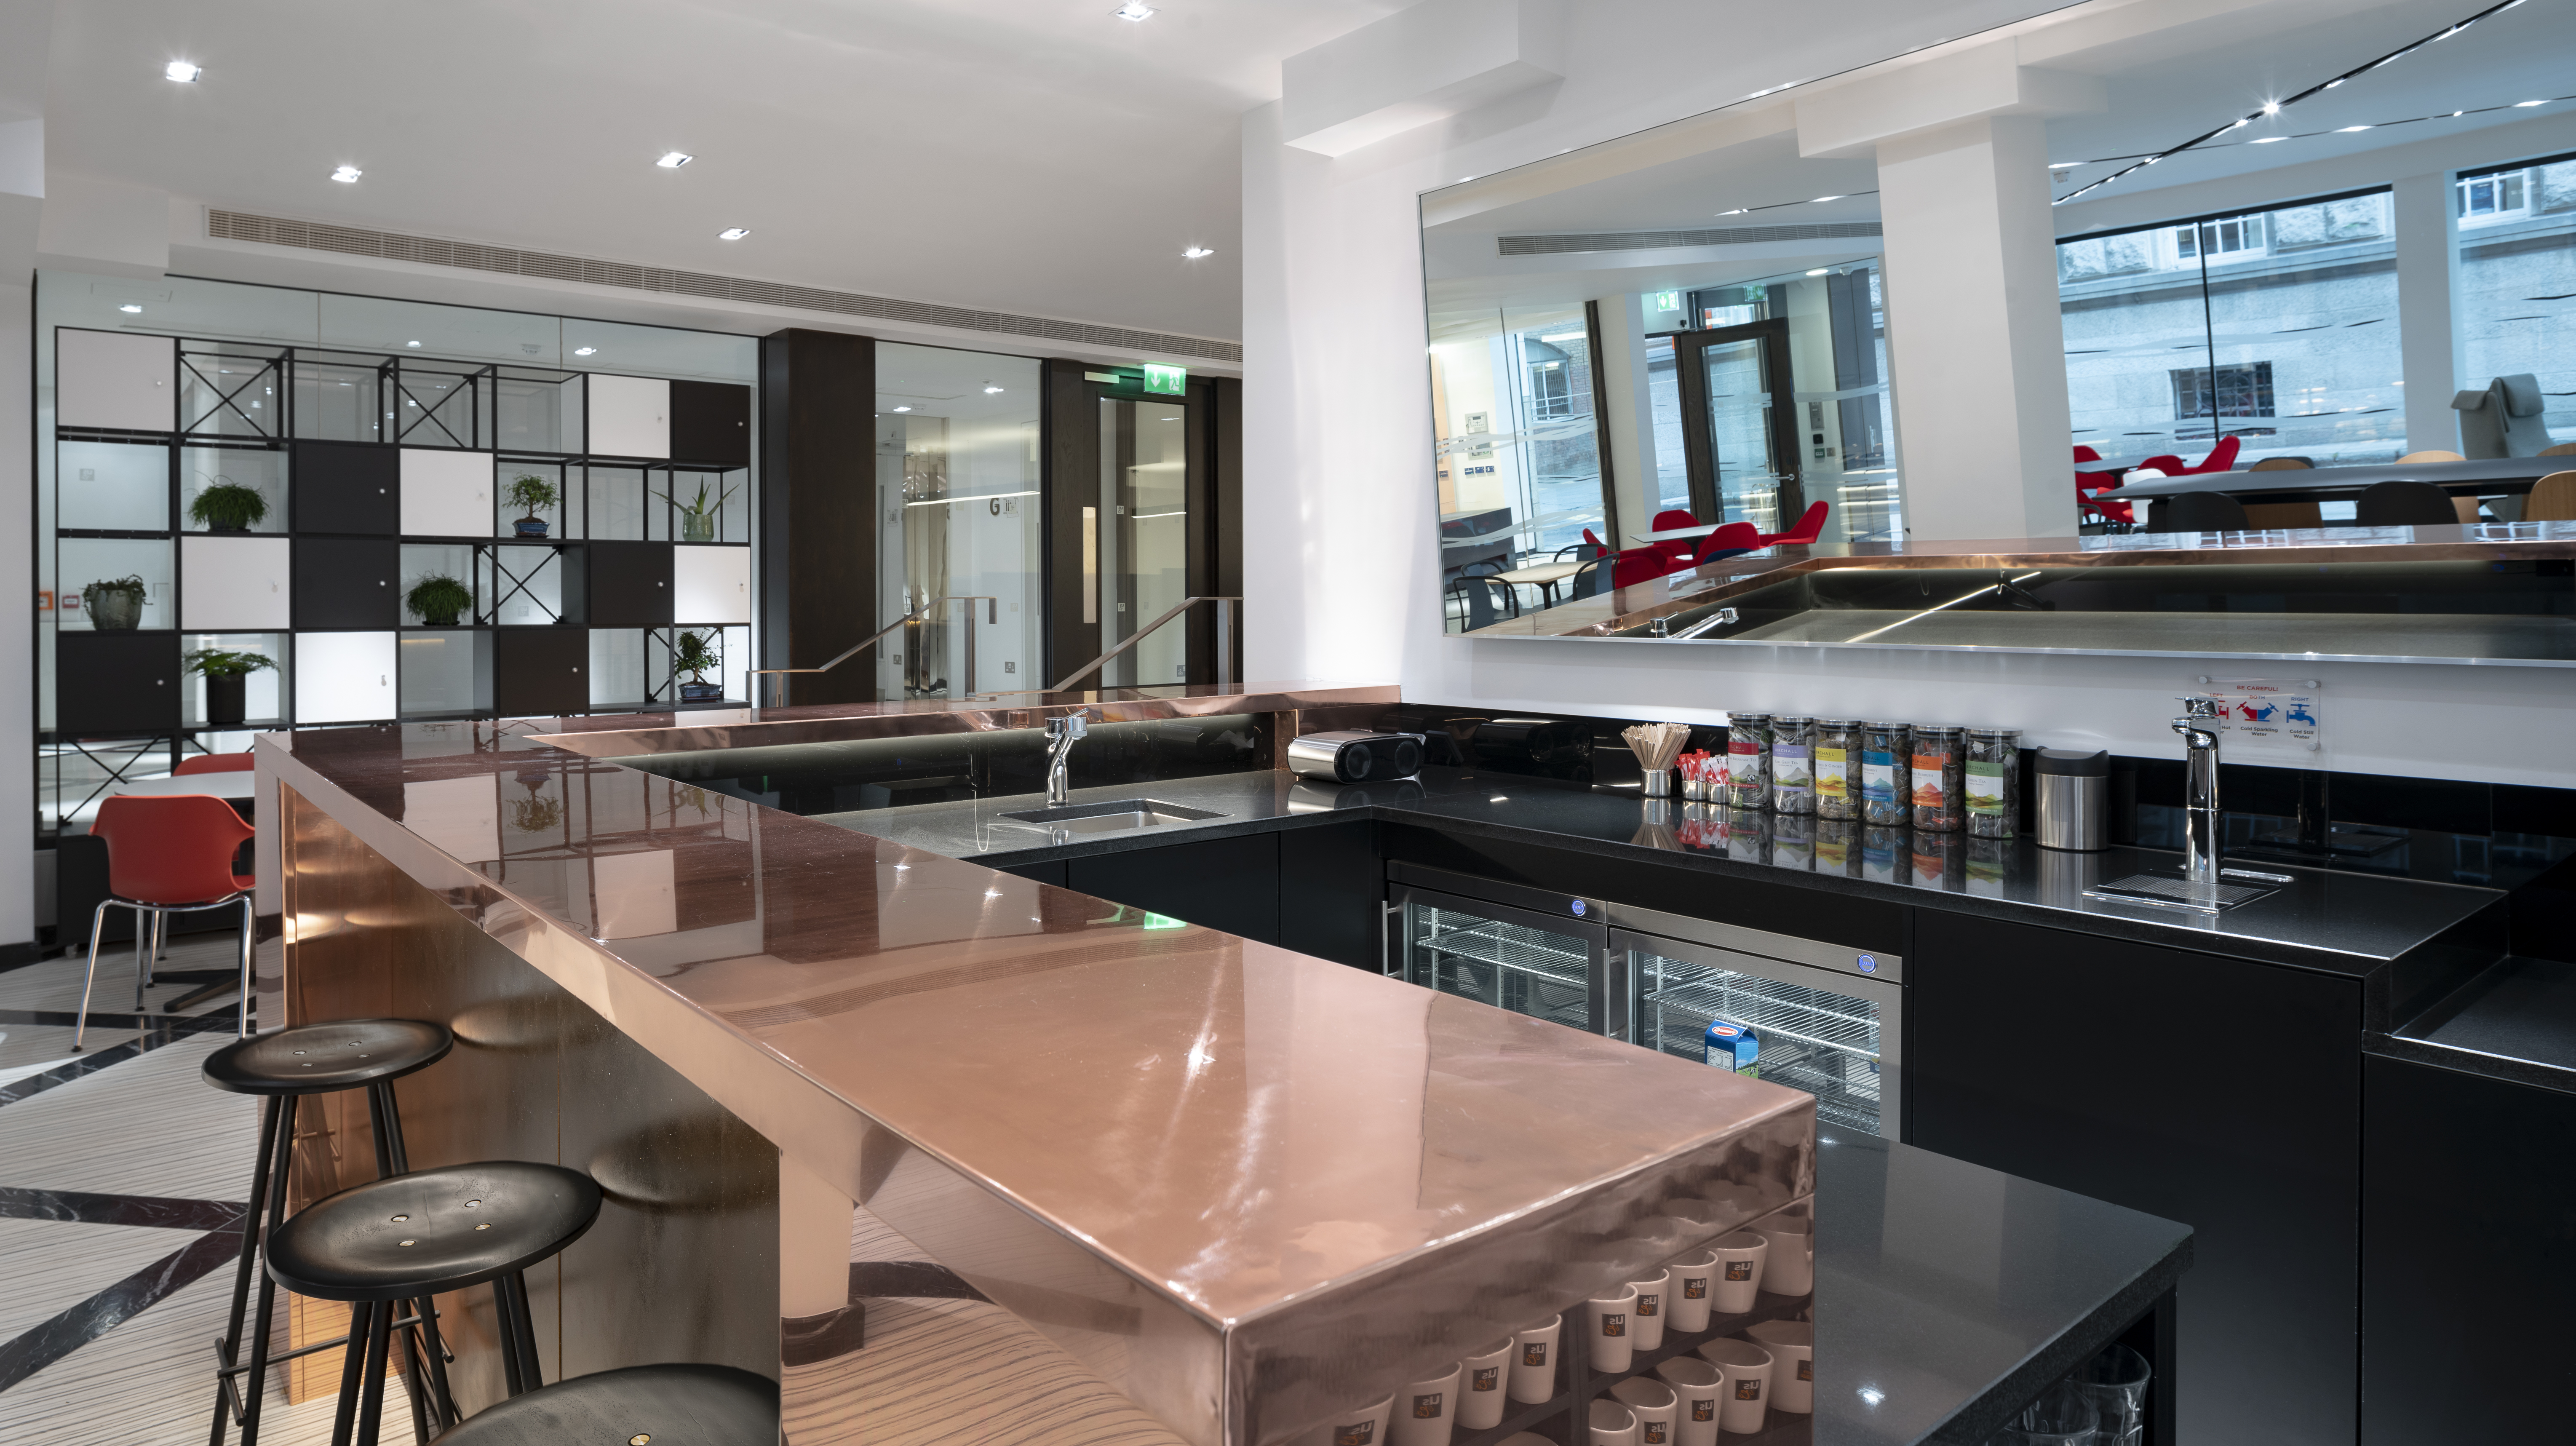 Dublin Us&Co breakout space with bar for socialising and networking ©donalmurphyphoto